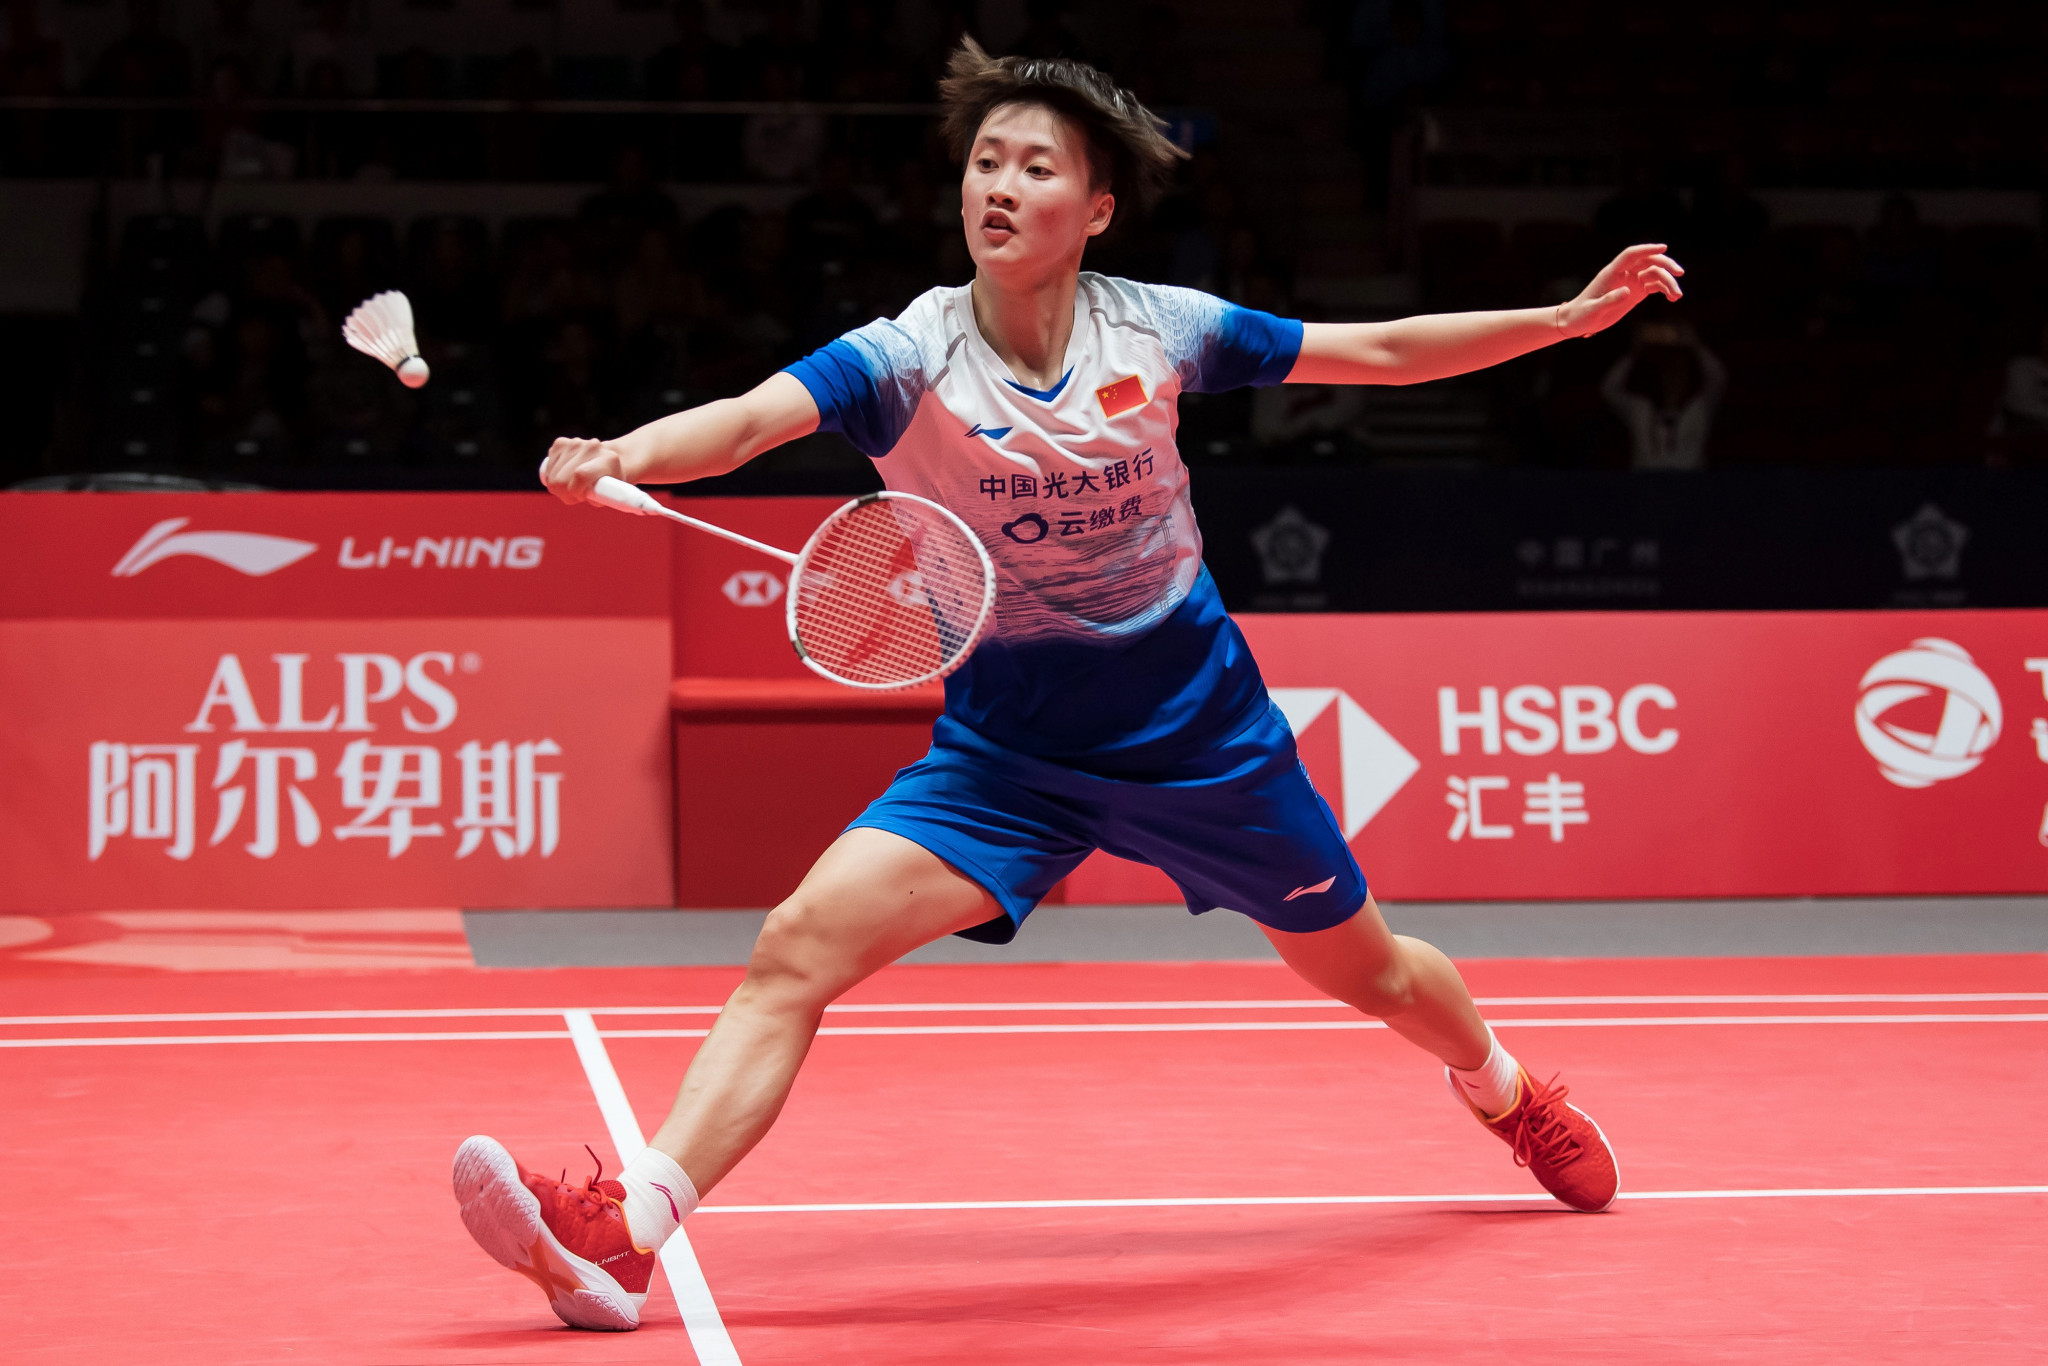 It is thought China will be absent from the BWF World Tour Finals after withdrawing from the two qualifying events beforehand ©Getty Images